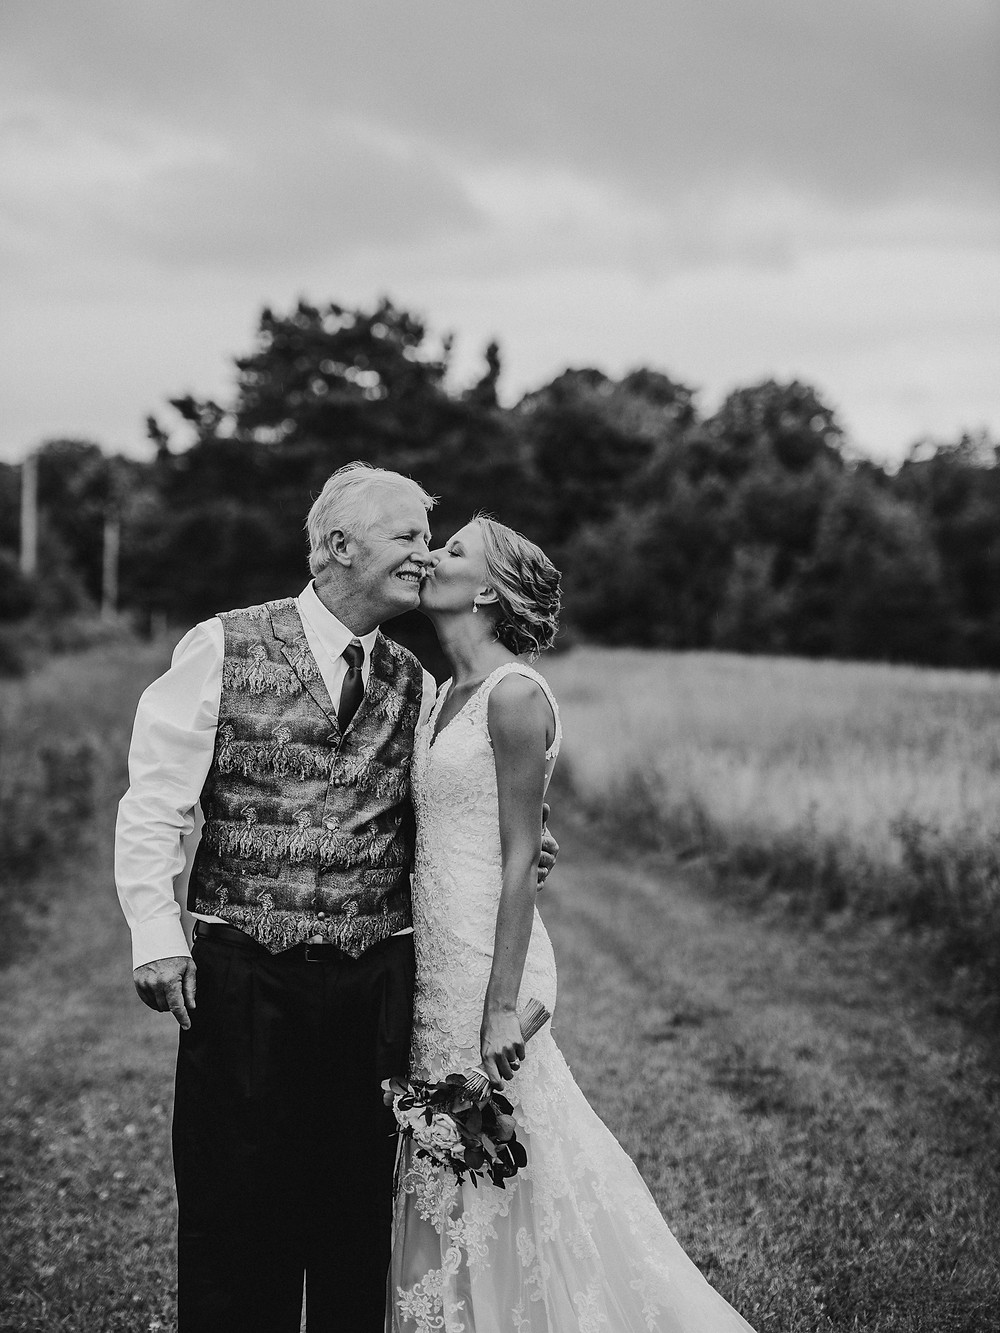 Father and bride wedding photo.  Wedding Photographer Rochester, NY